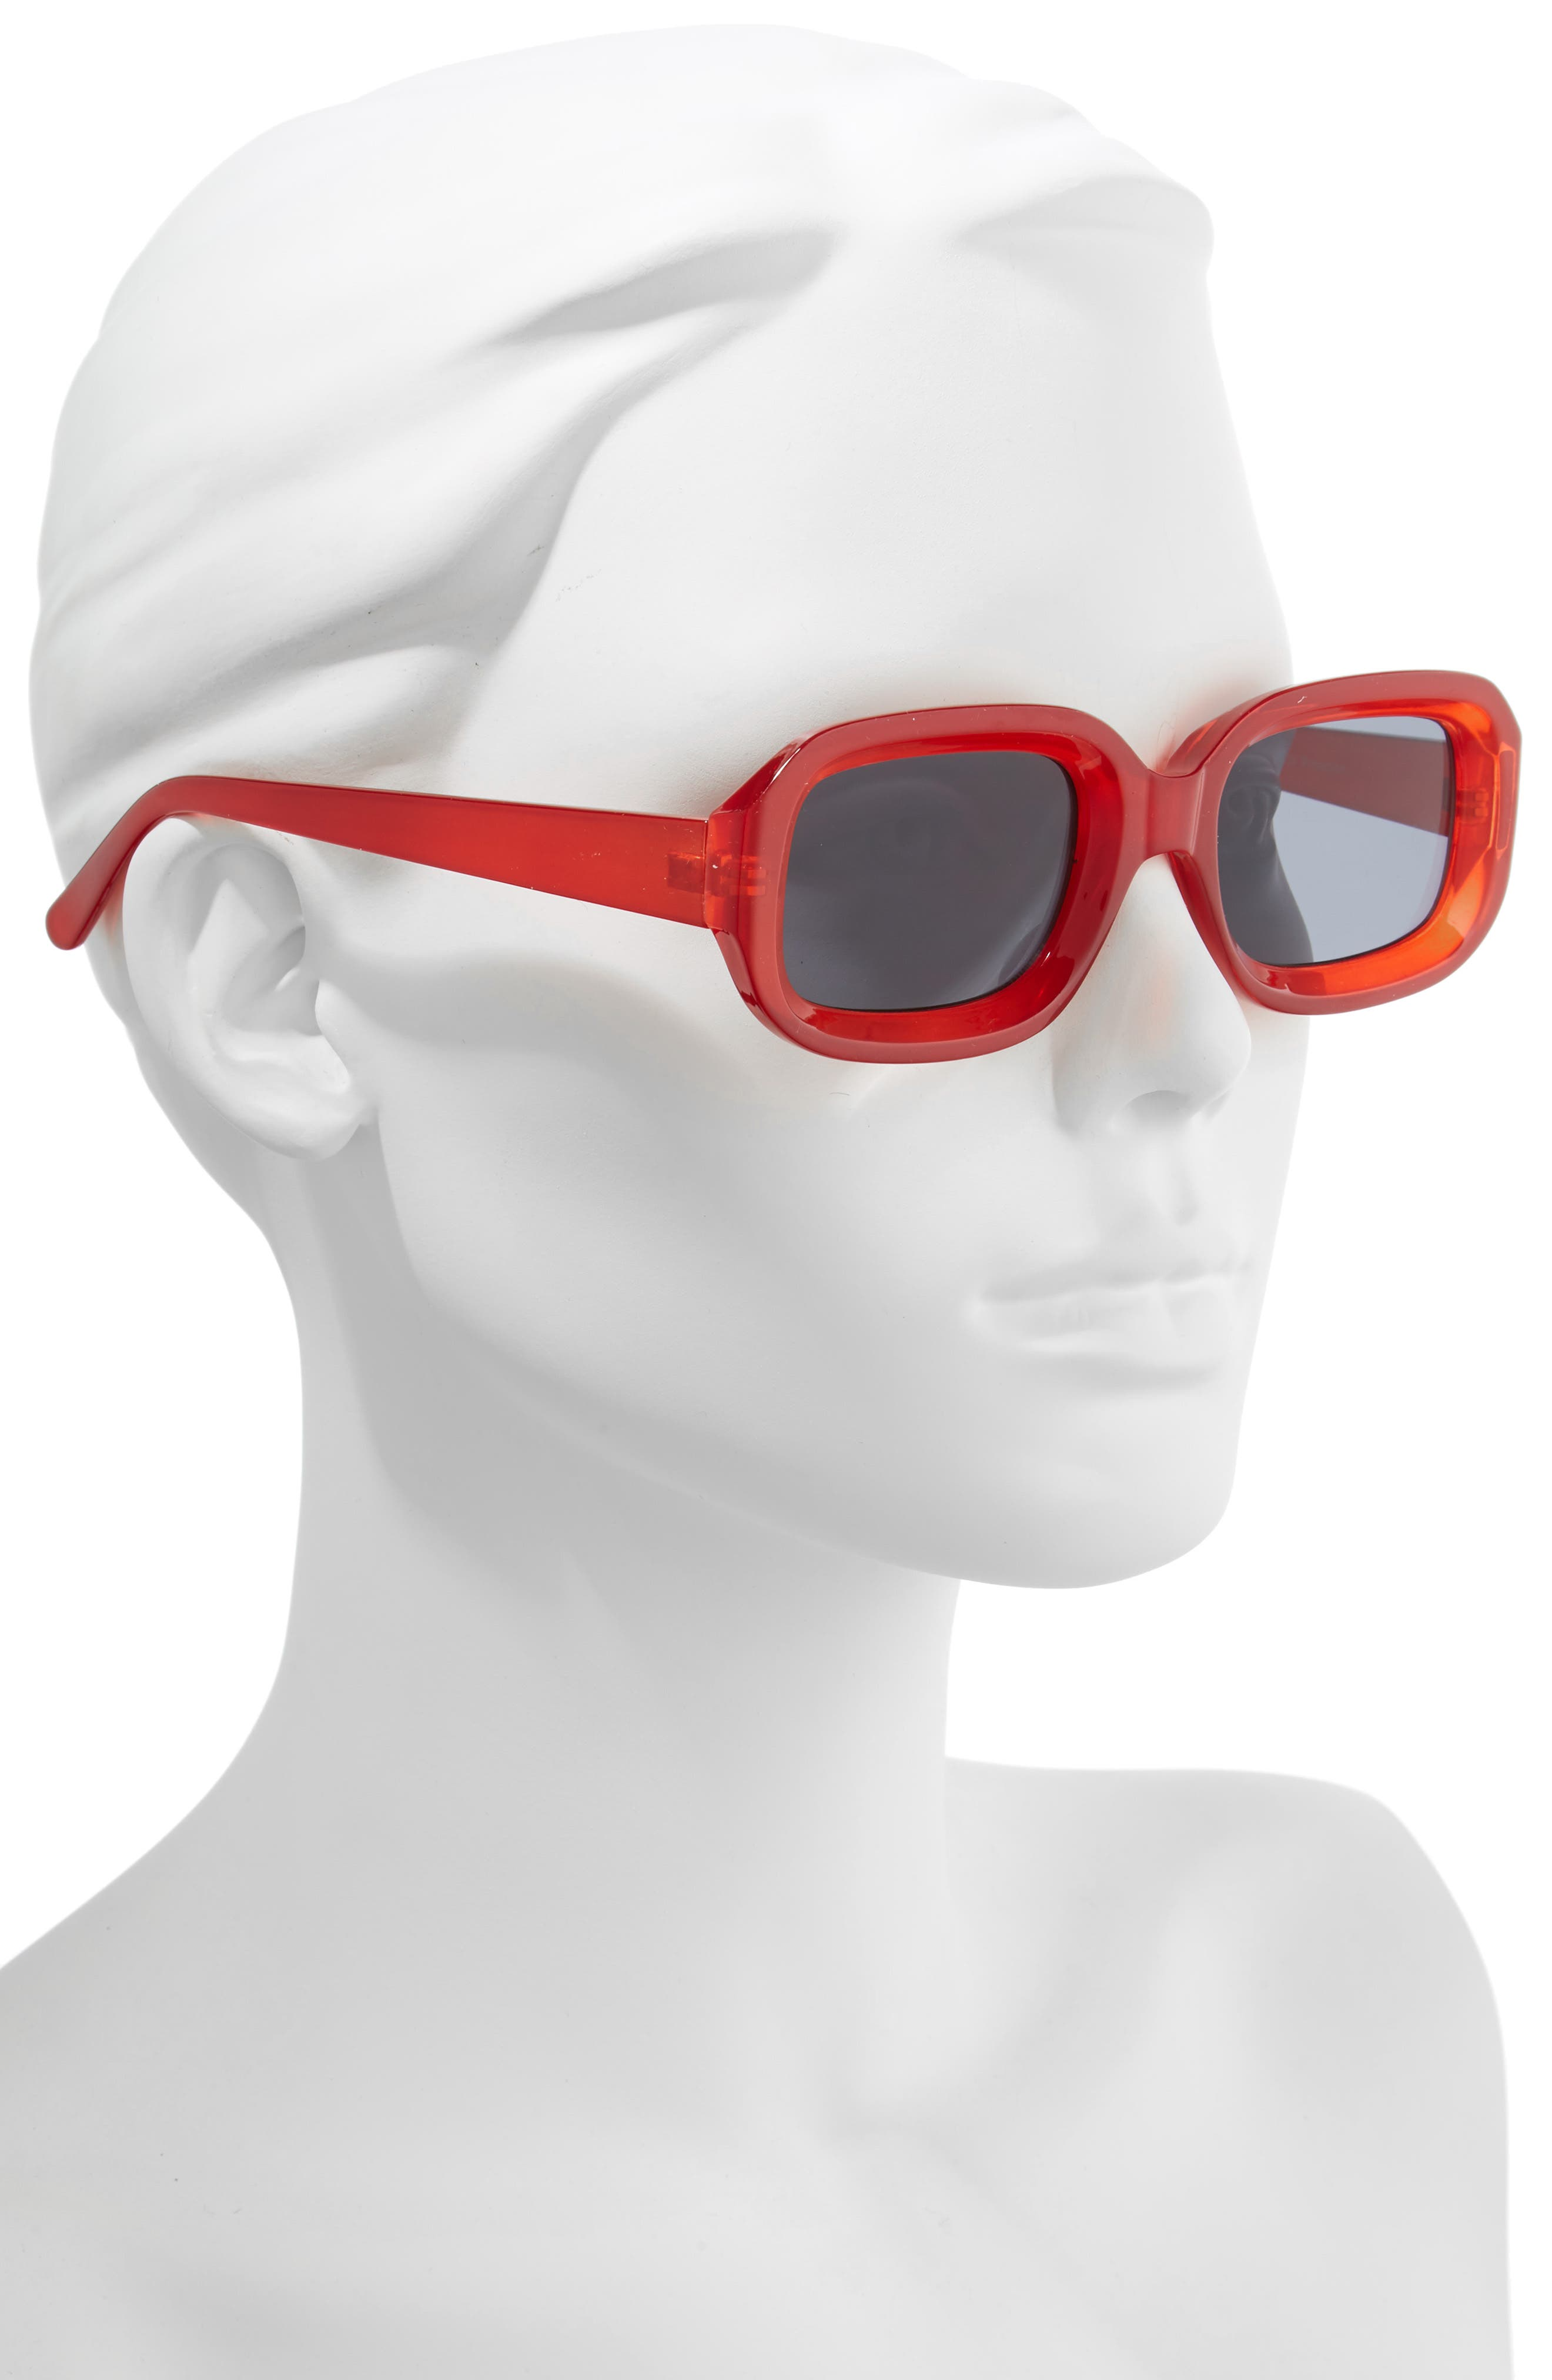 66mm Inset Square Sunglasses,                             Alternate thumbnail 2, color,                             RED/ BLACK